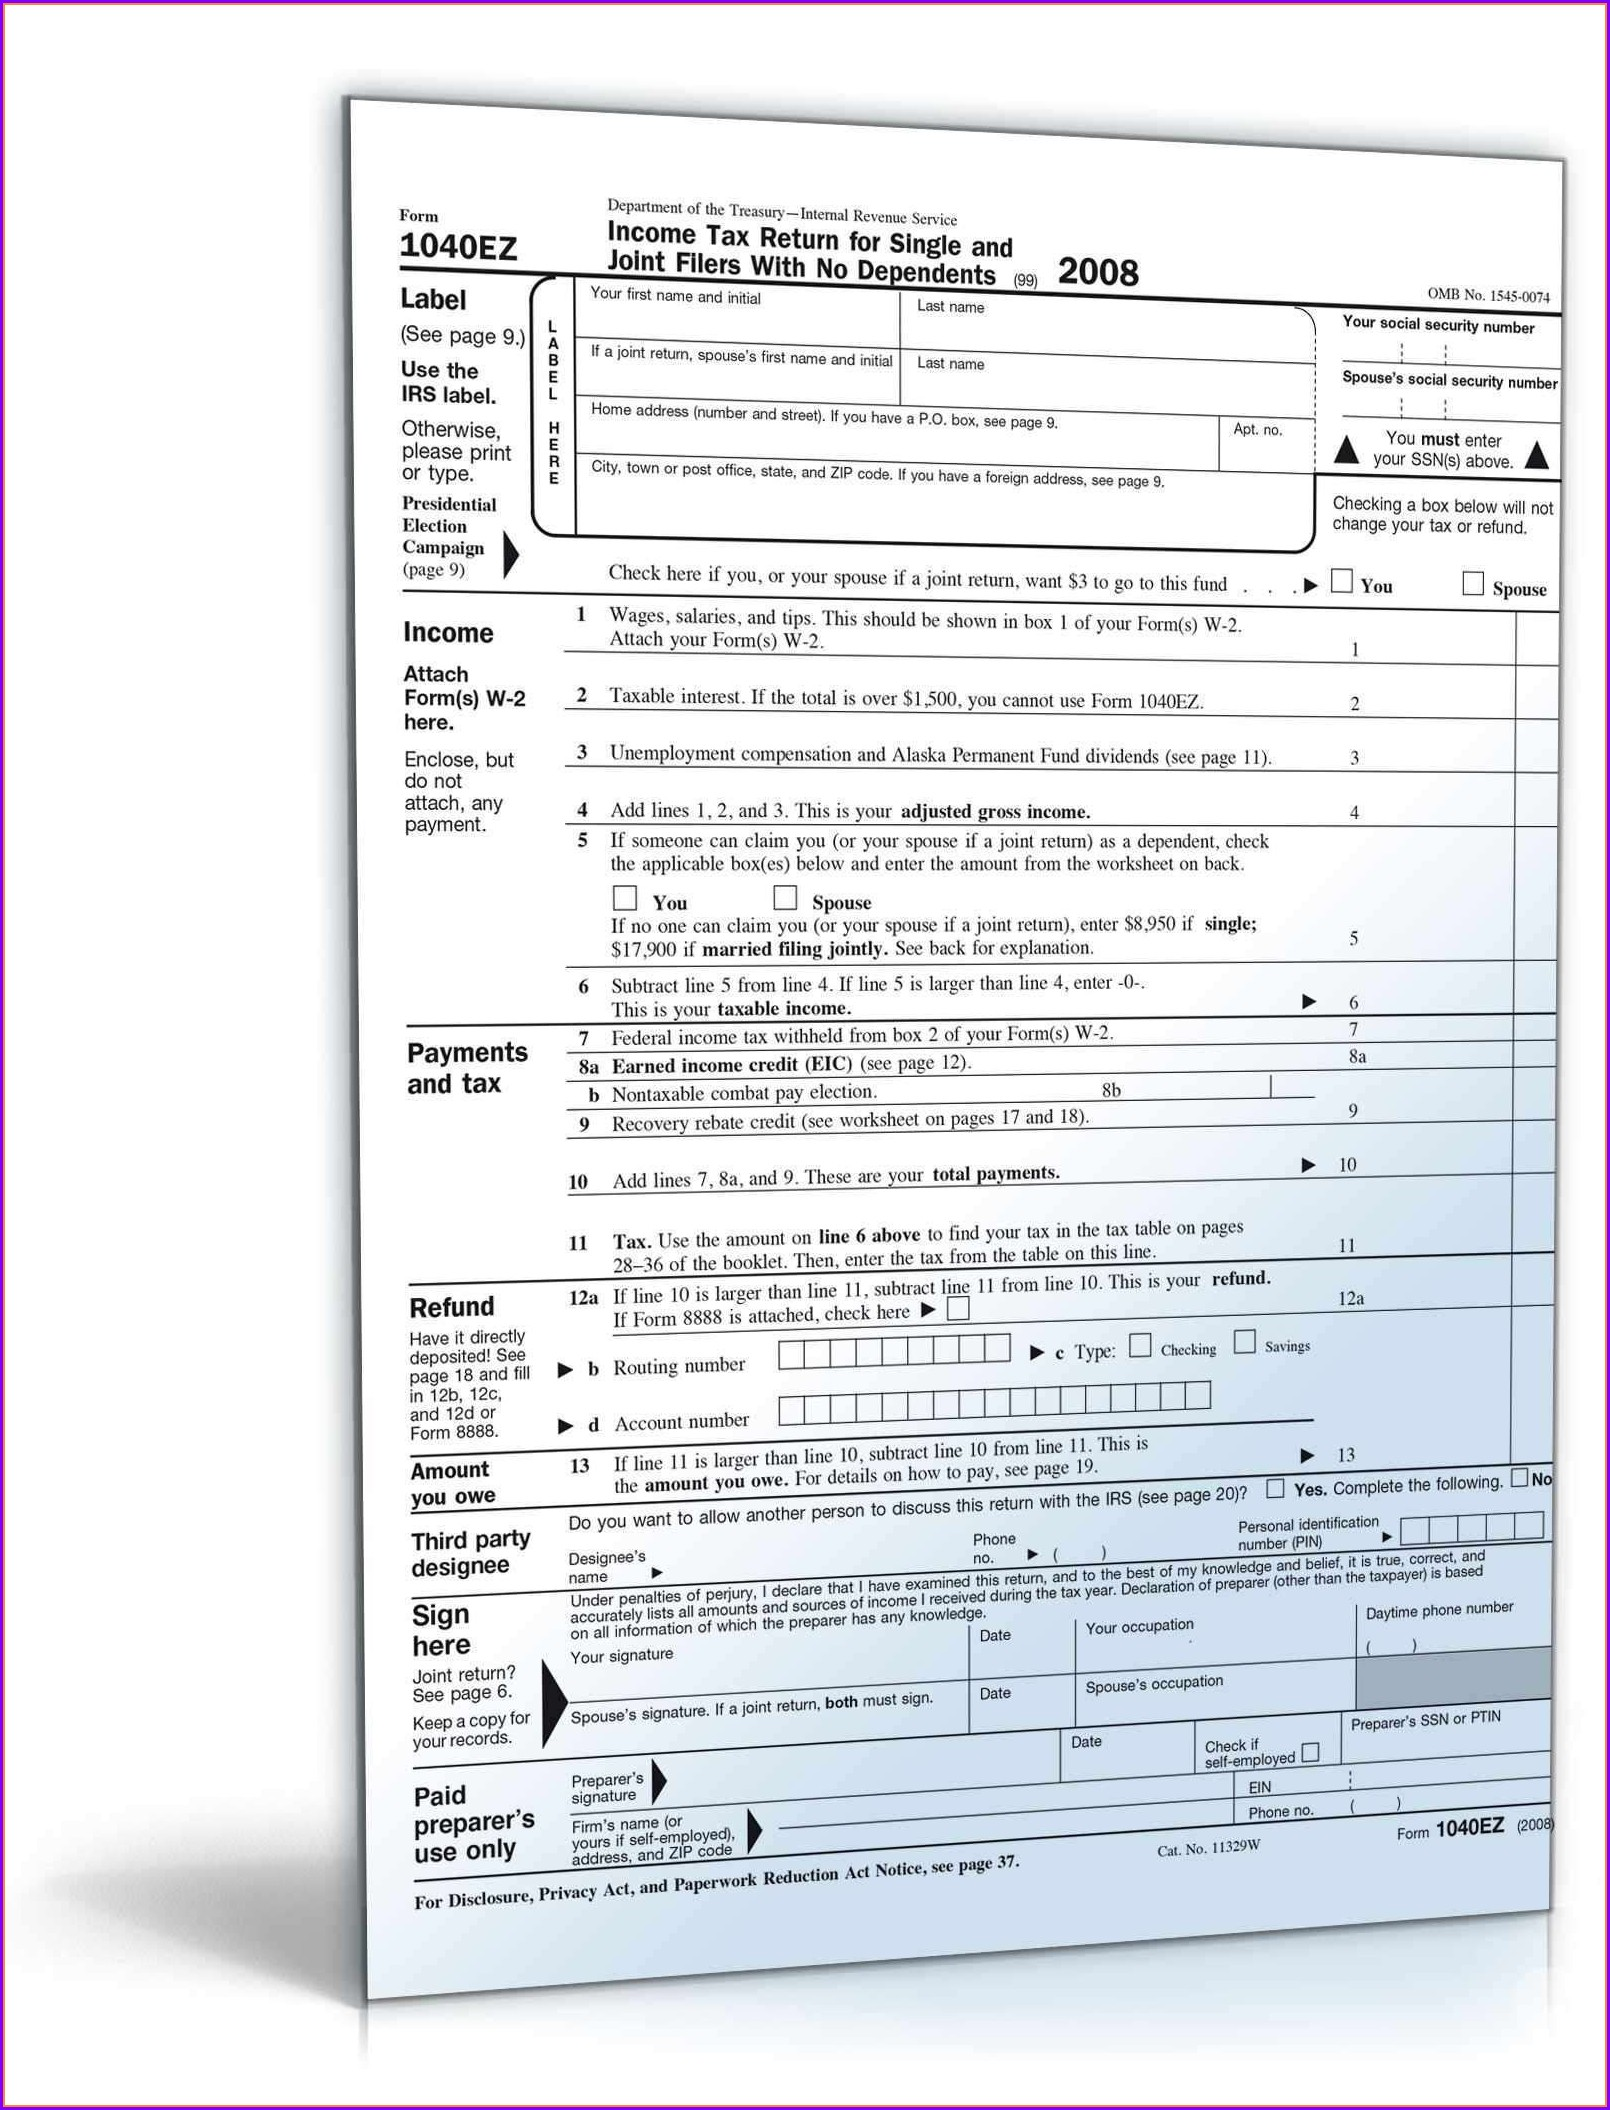 1040ez Earned Income Credit Worksheet